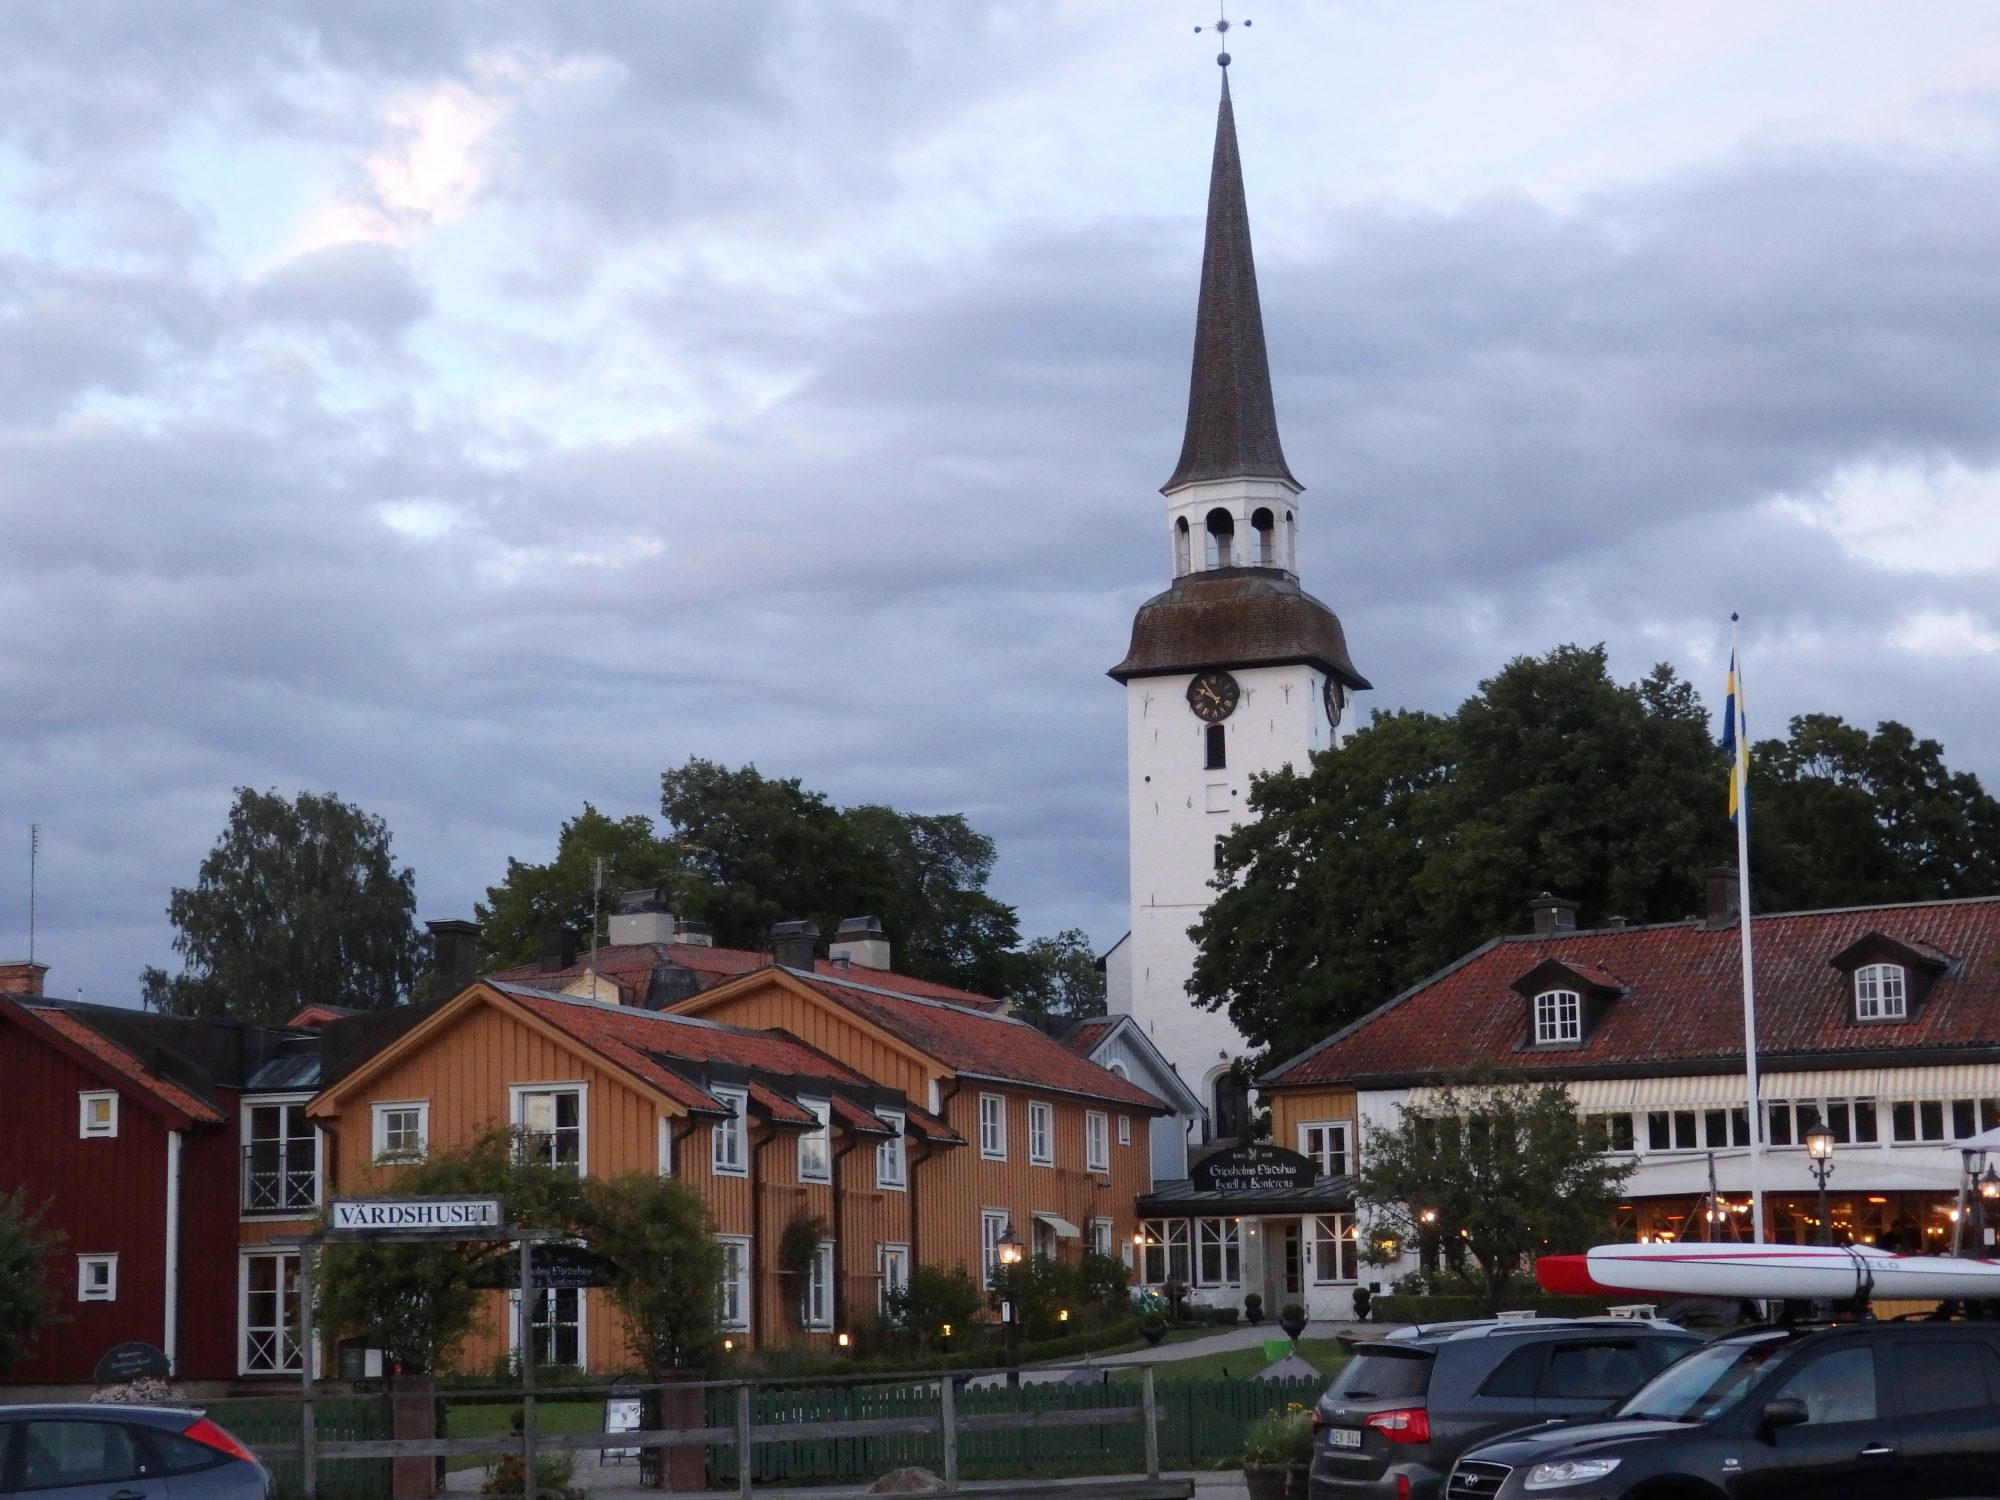 Gripsholms Värdhus, with the church towering above it, Mariefred, Sweden